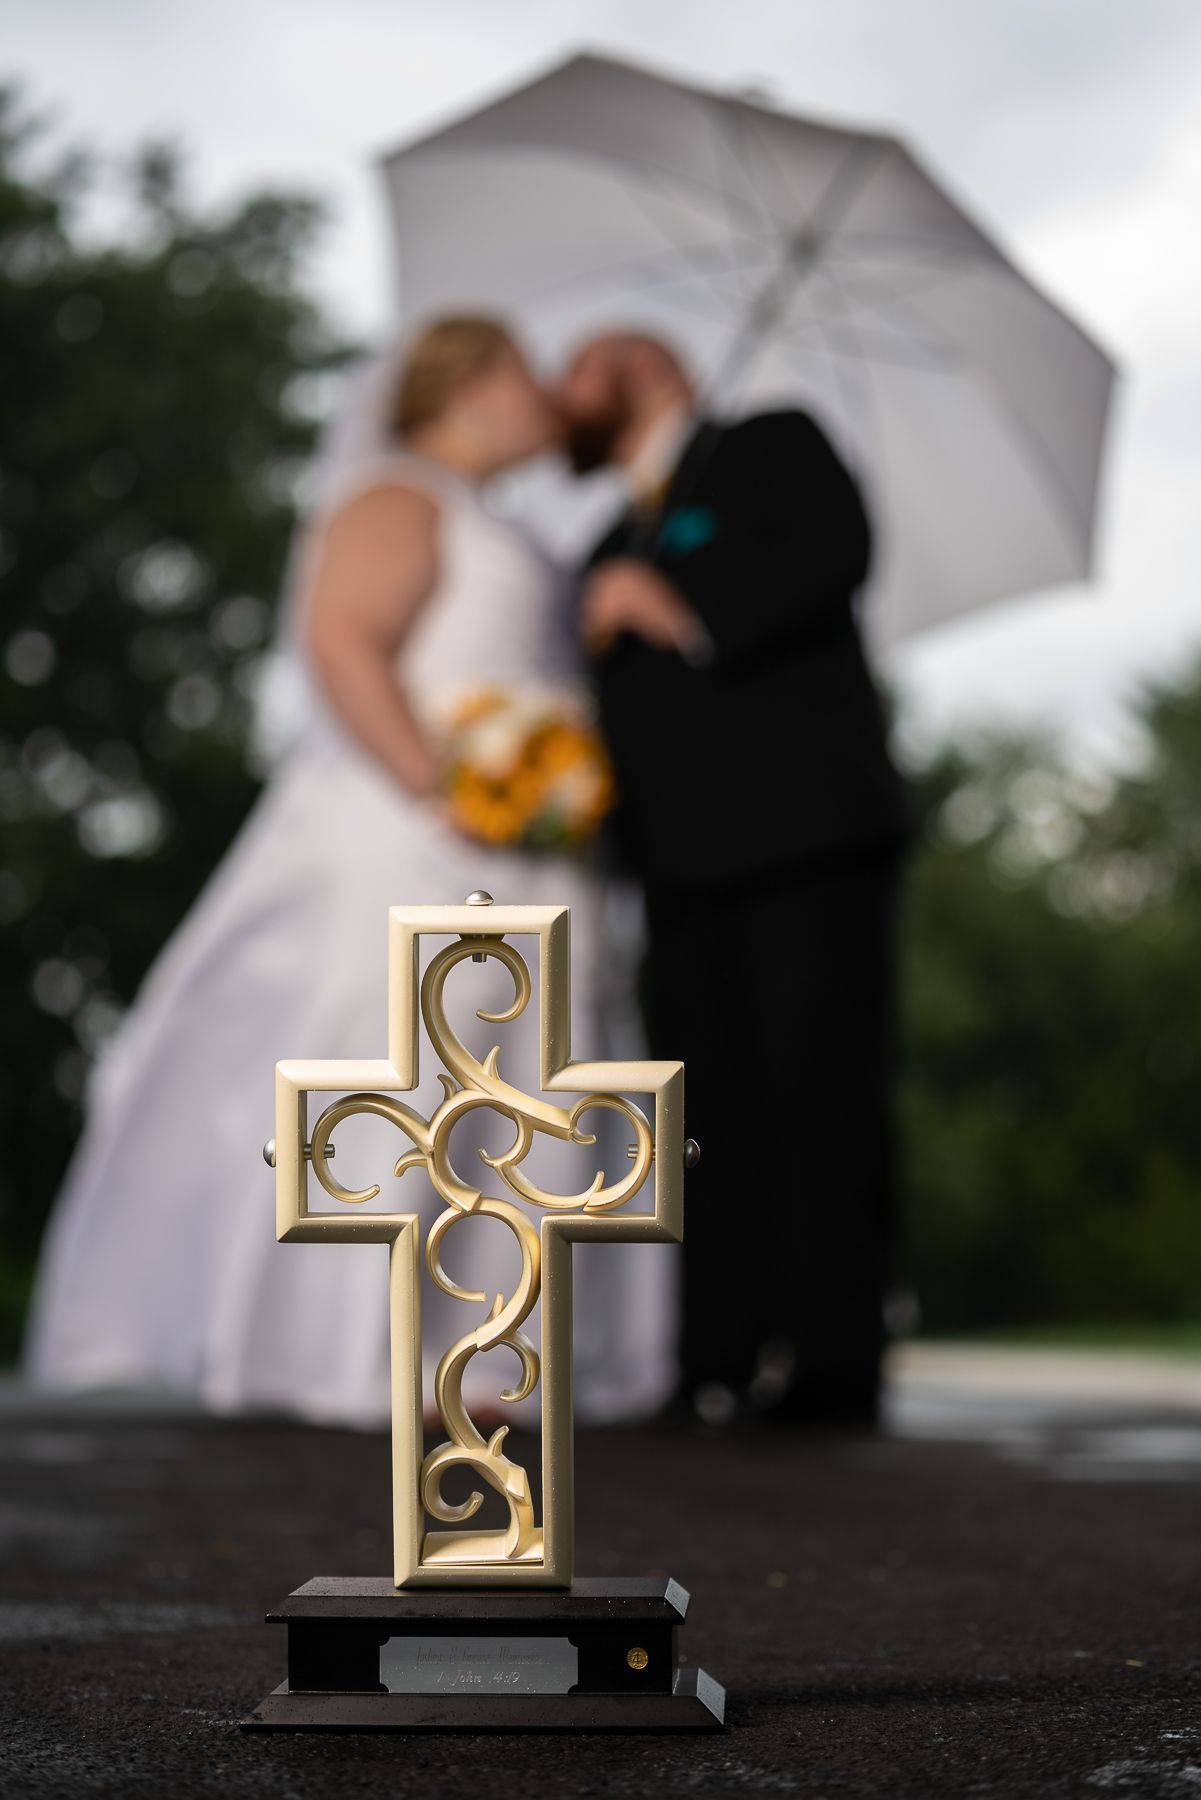 The Unity Cross is used during a Wedding Ceremony to show